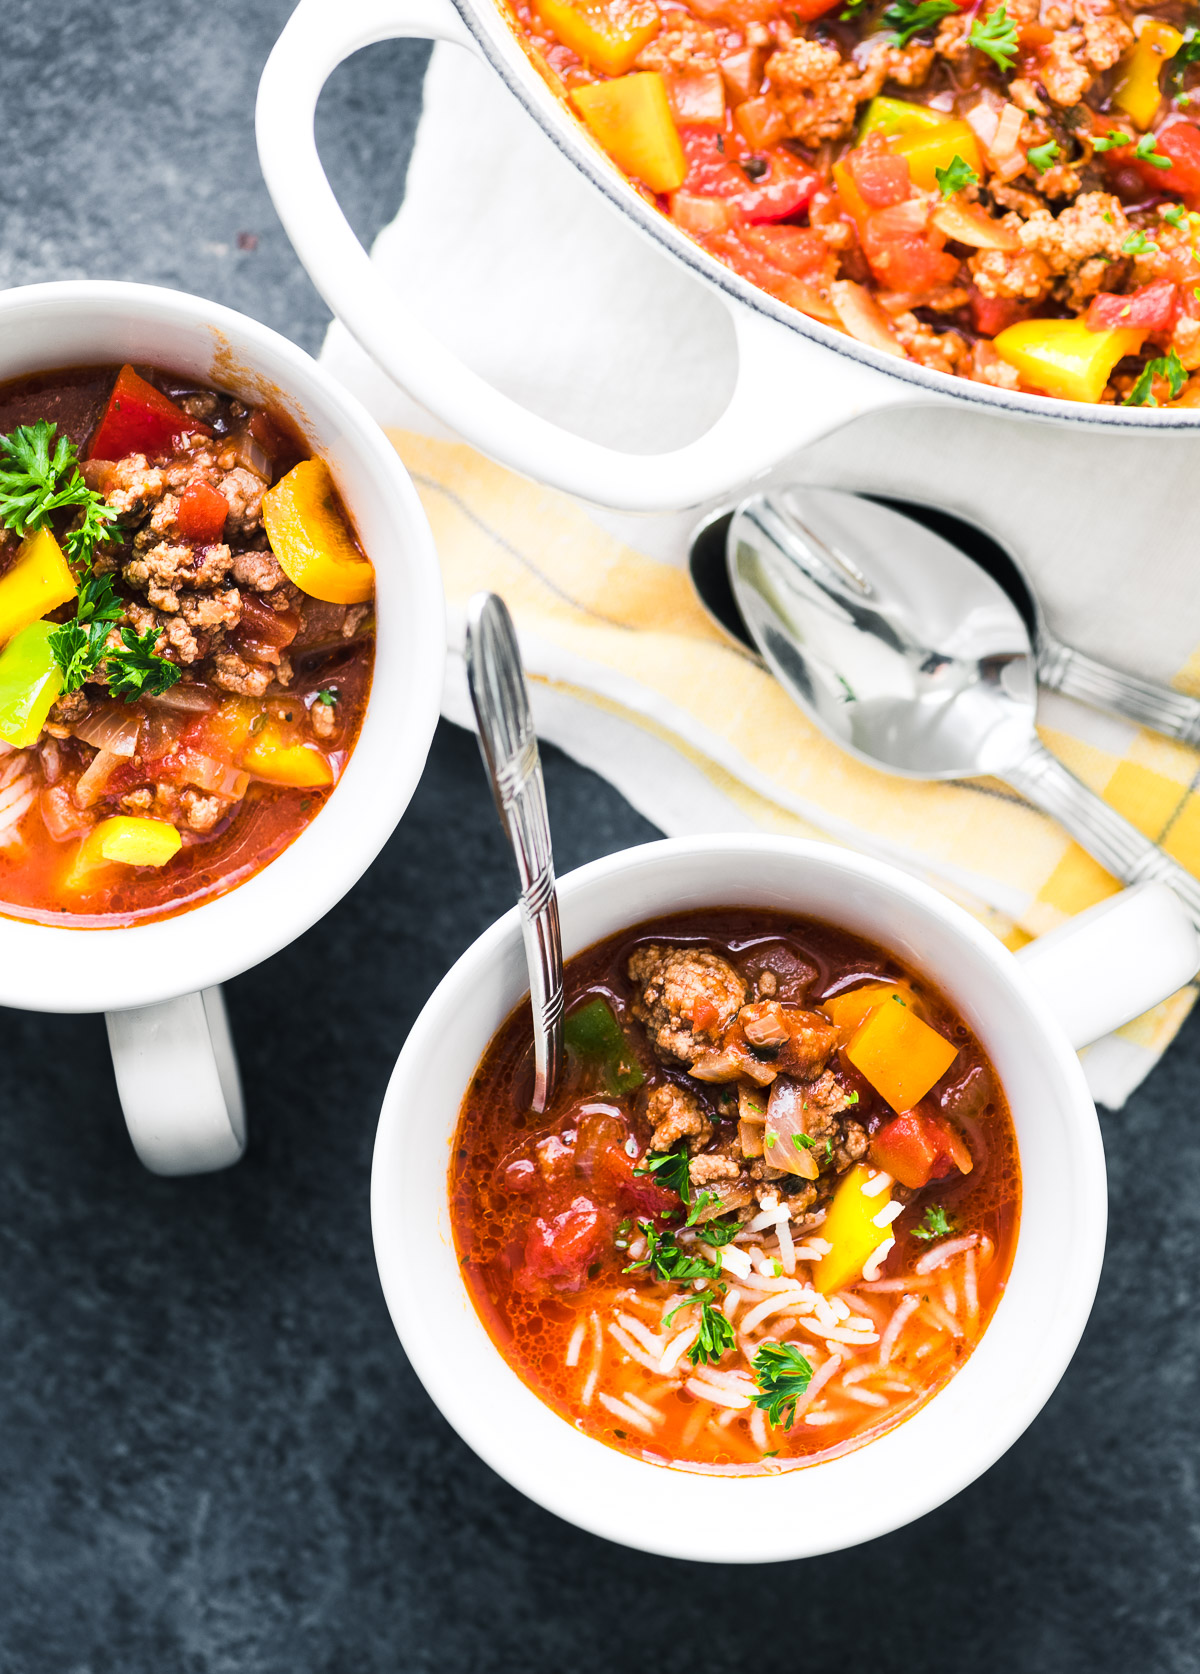 stuffed pepper soup in white mugs with spoons